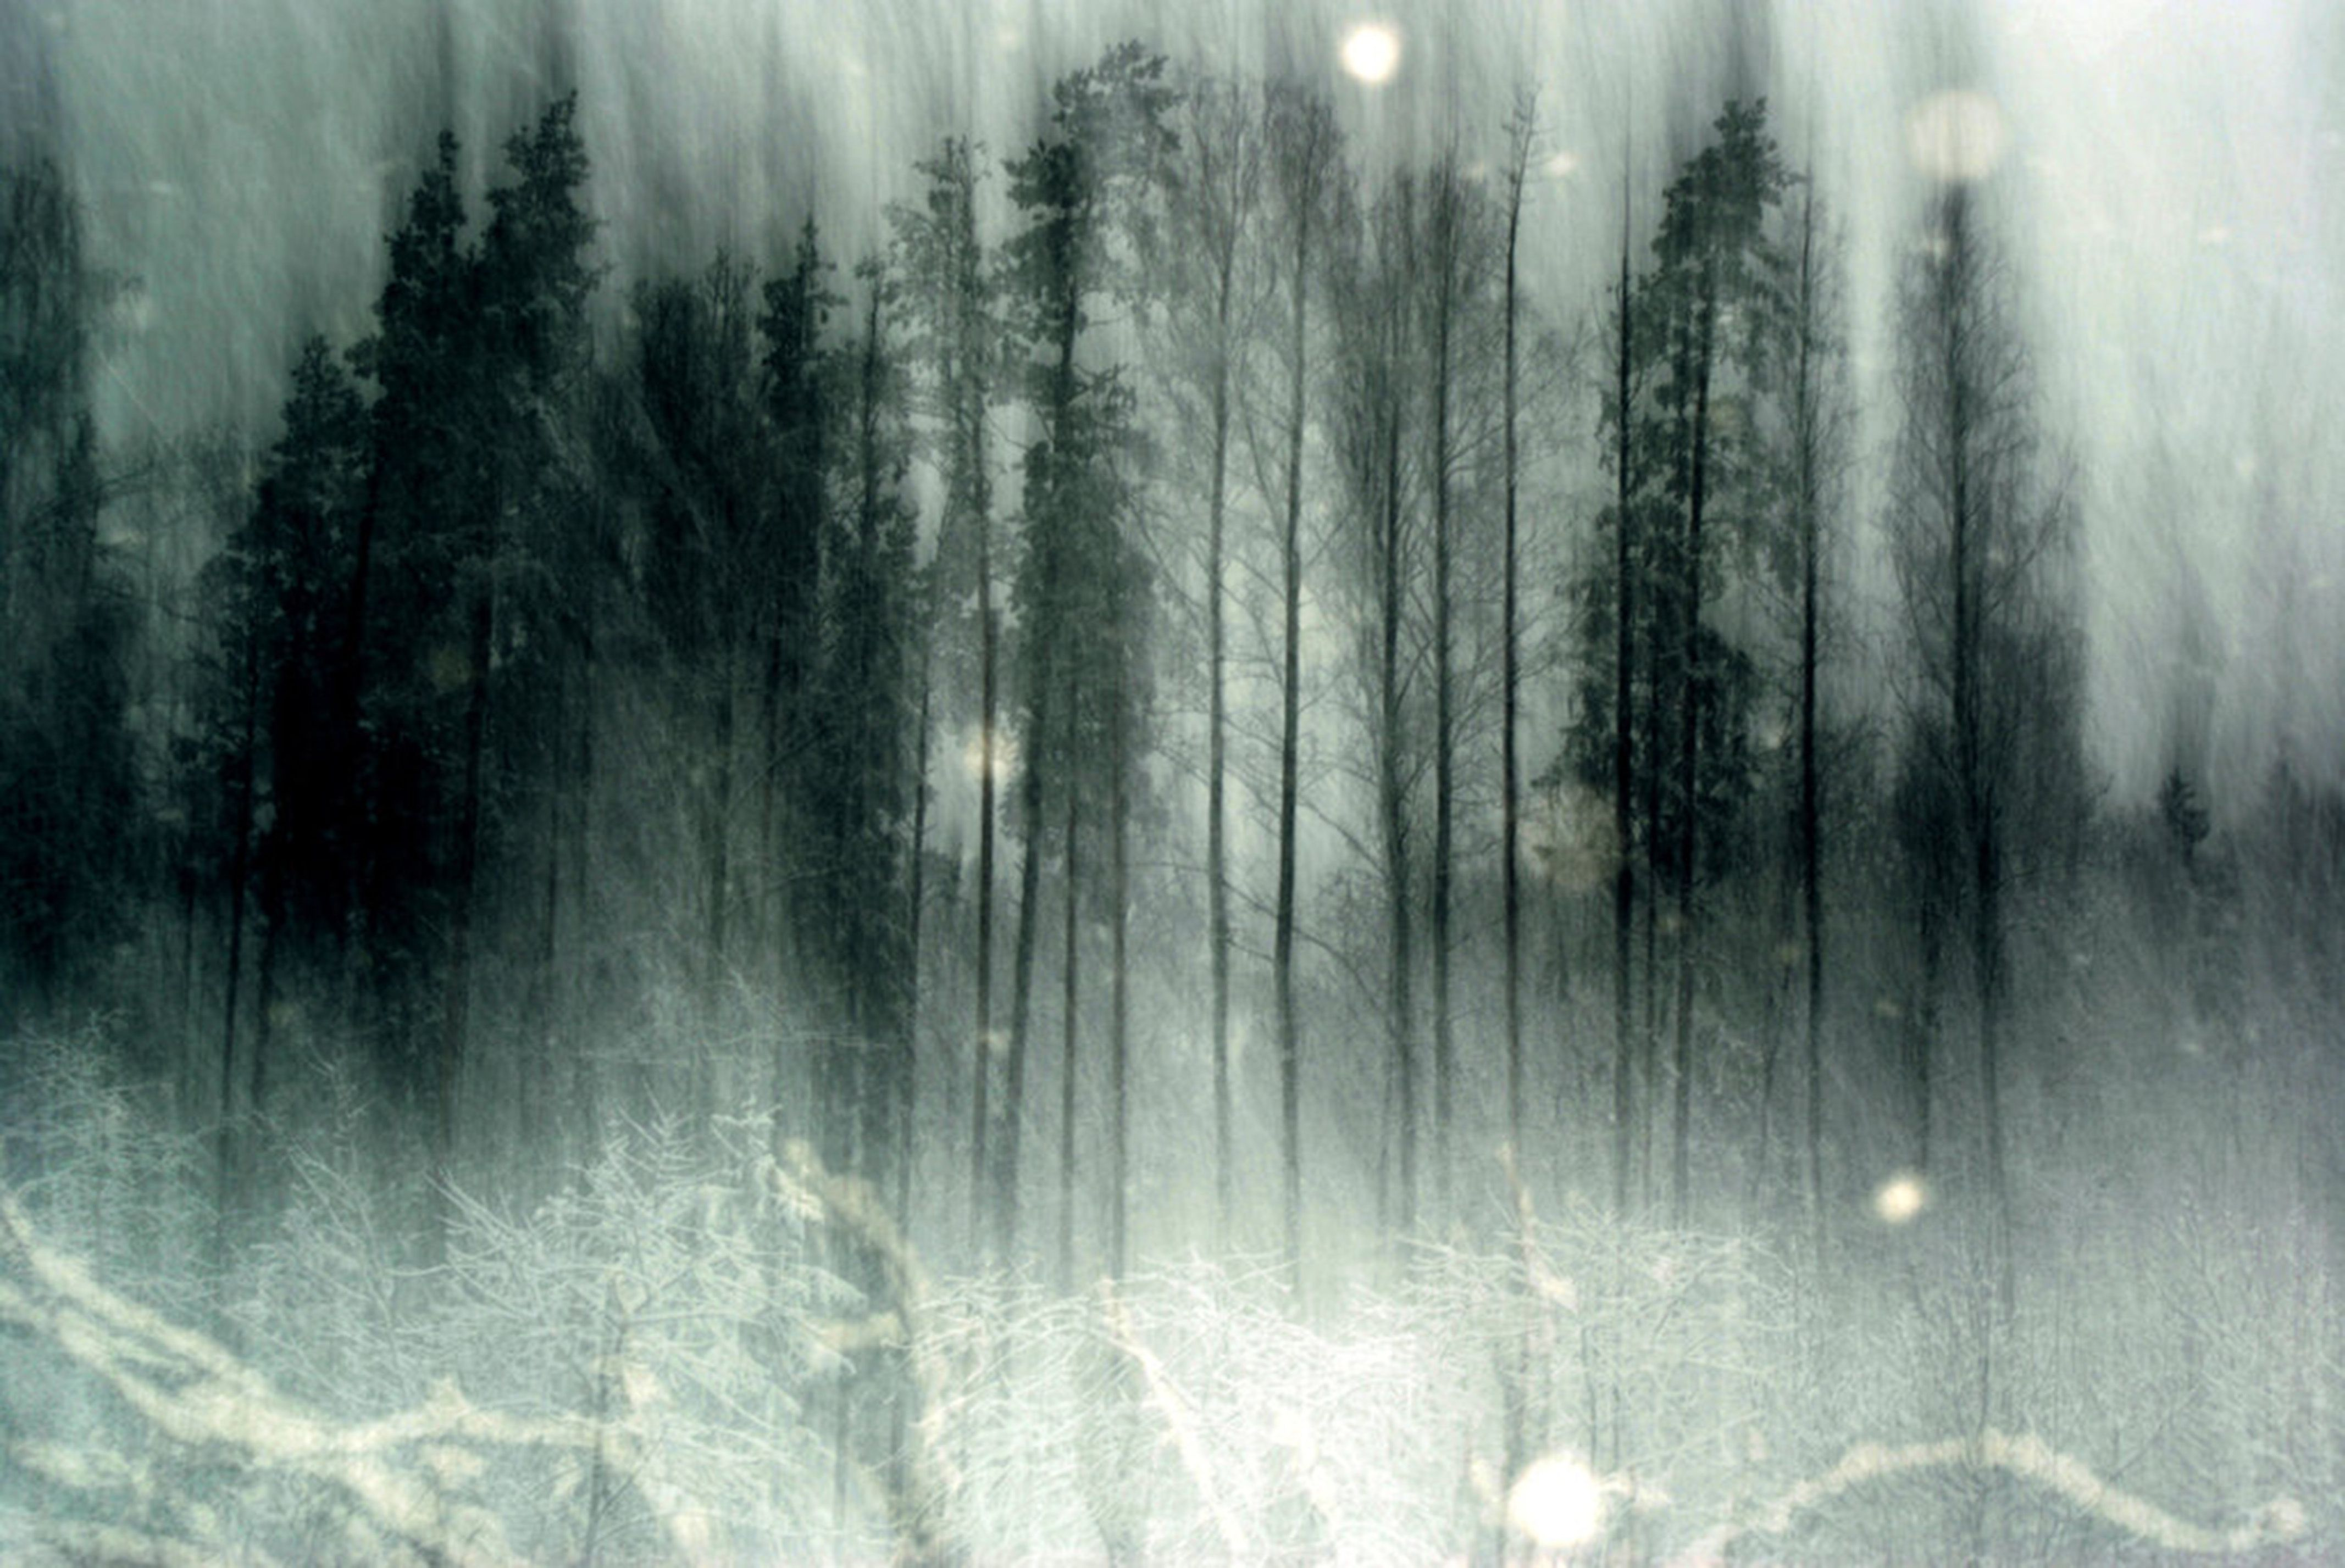 spooky forest wallpaper - photo #5